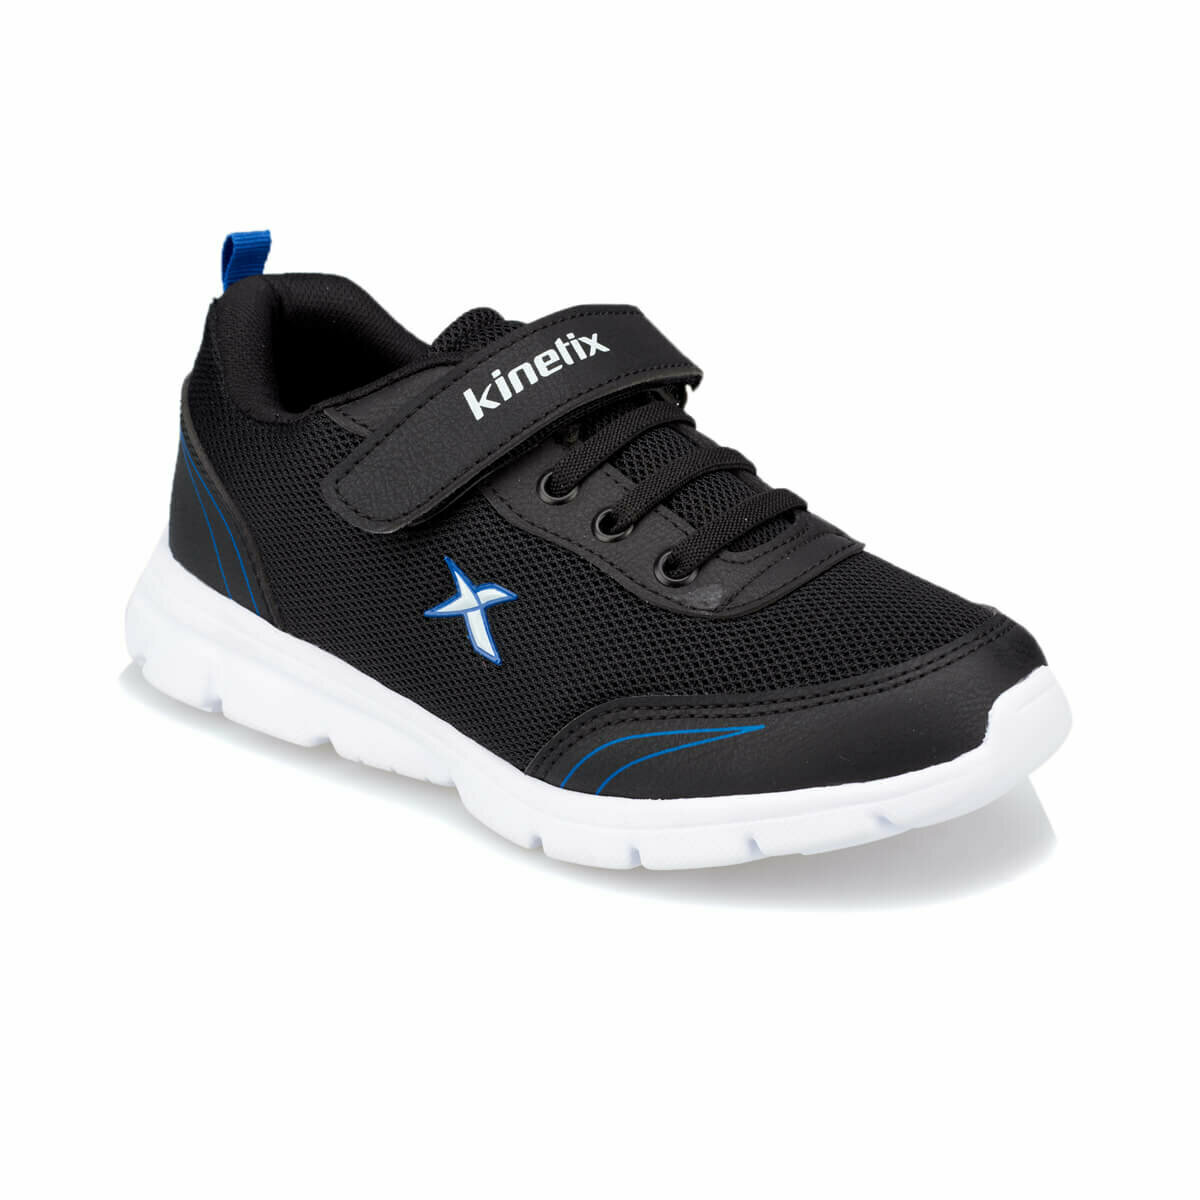 FLO YANNI Black Male Child Running Shoes KINETIX